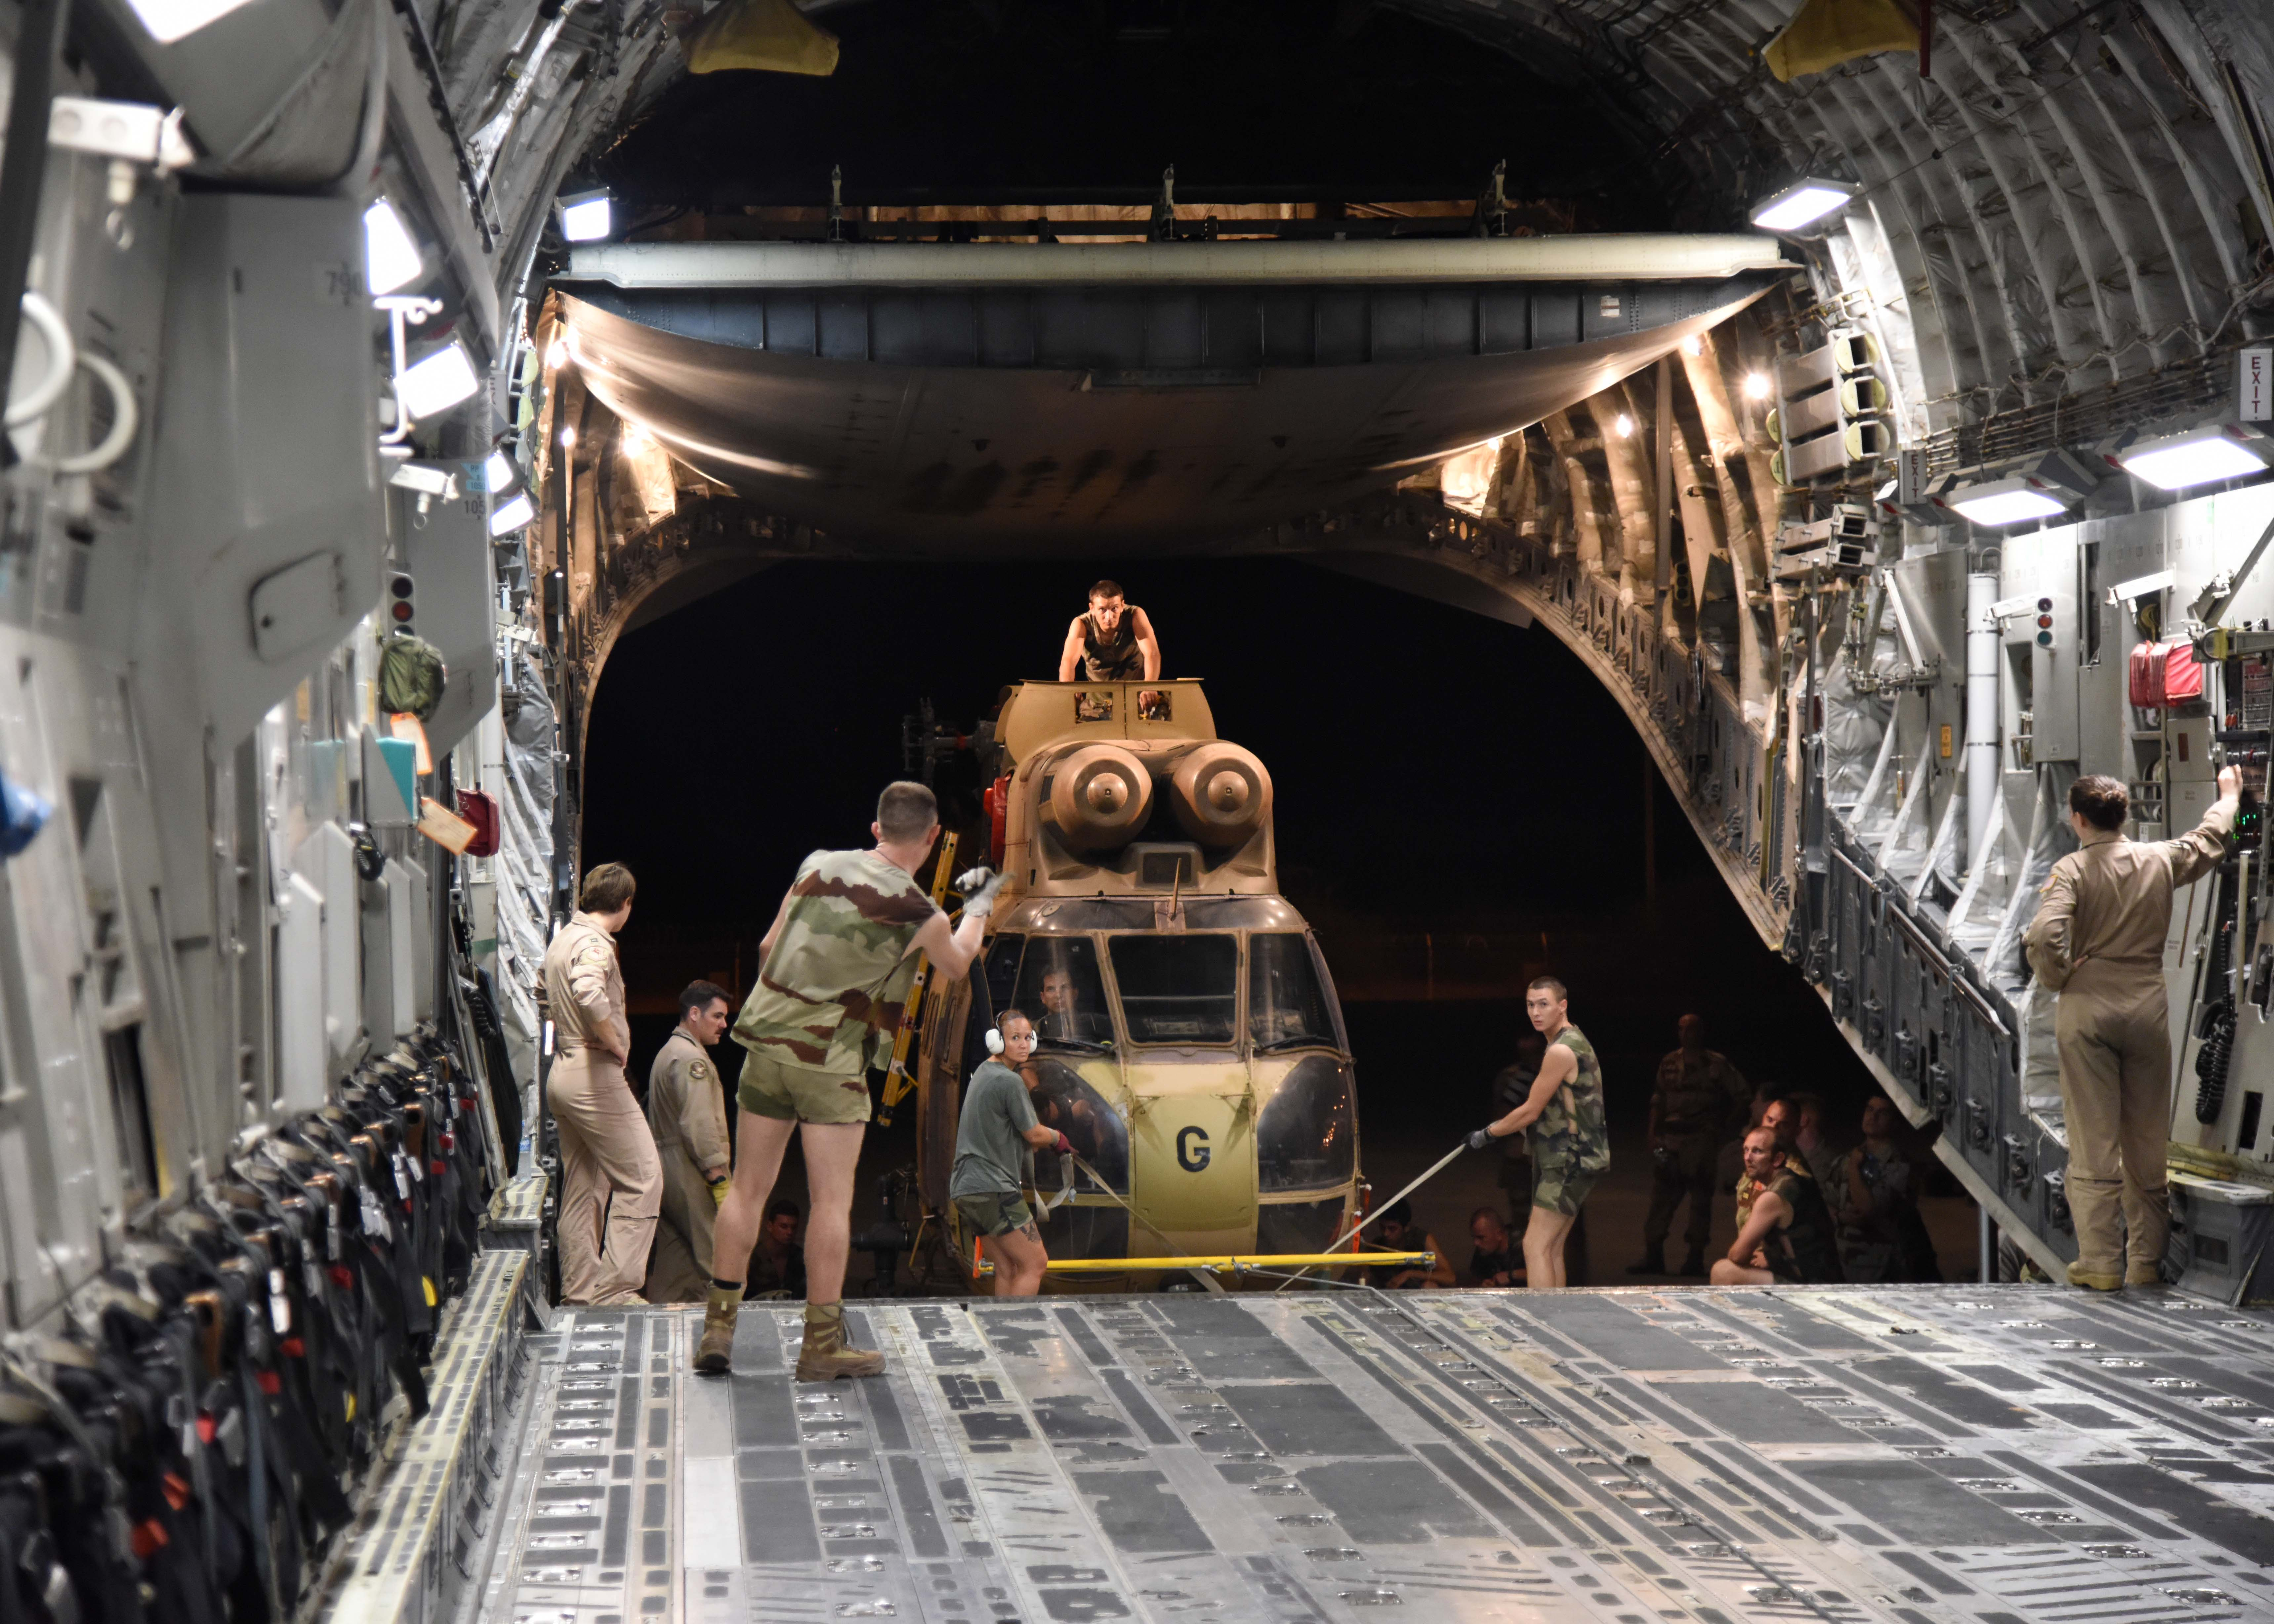 150822-N-DJ346-016 CAMP LEMONNIER, Djibouti (August 22, 2015) French and U.S. service members prepare to transport the first of two French Puma Helicopters and associated Passengers & Cargo to N'Djamena aboard a U.S. Air Force C-17 Globemaster. The helicopters support French operations at the intersecting borders of Libya, Chad and Niger deterring weapons and drug smuggling, and jihadist regularly crossing between nations. This is the first time France has received support from U.S. Forces in Djibouti for any mission outside of East Africa. (U.S. Navy photo by Chief Mass Communication Specialist Donald W. Randall/Released)